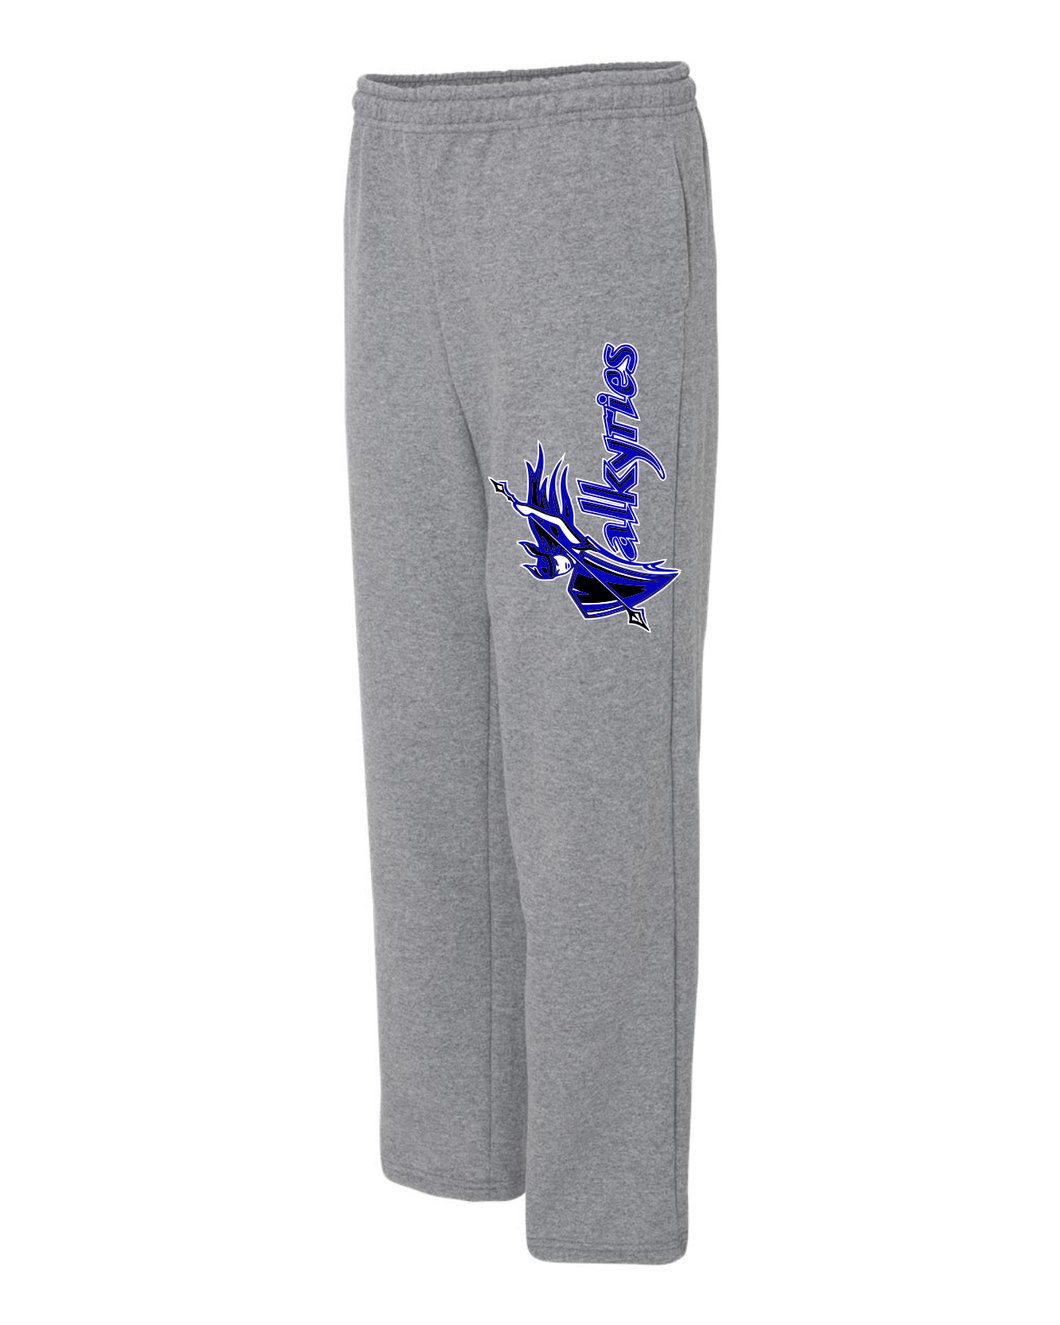 River City Valkyrie Closed Bottom Sweatpants, Adult